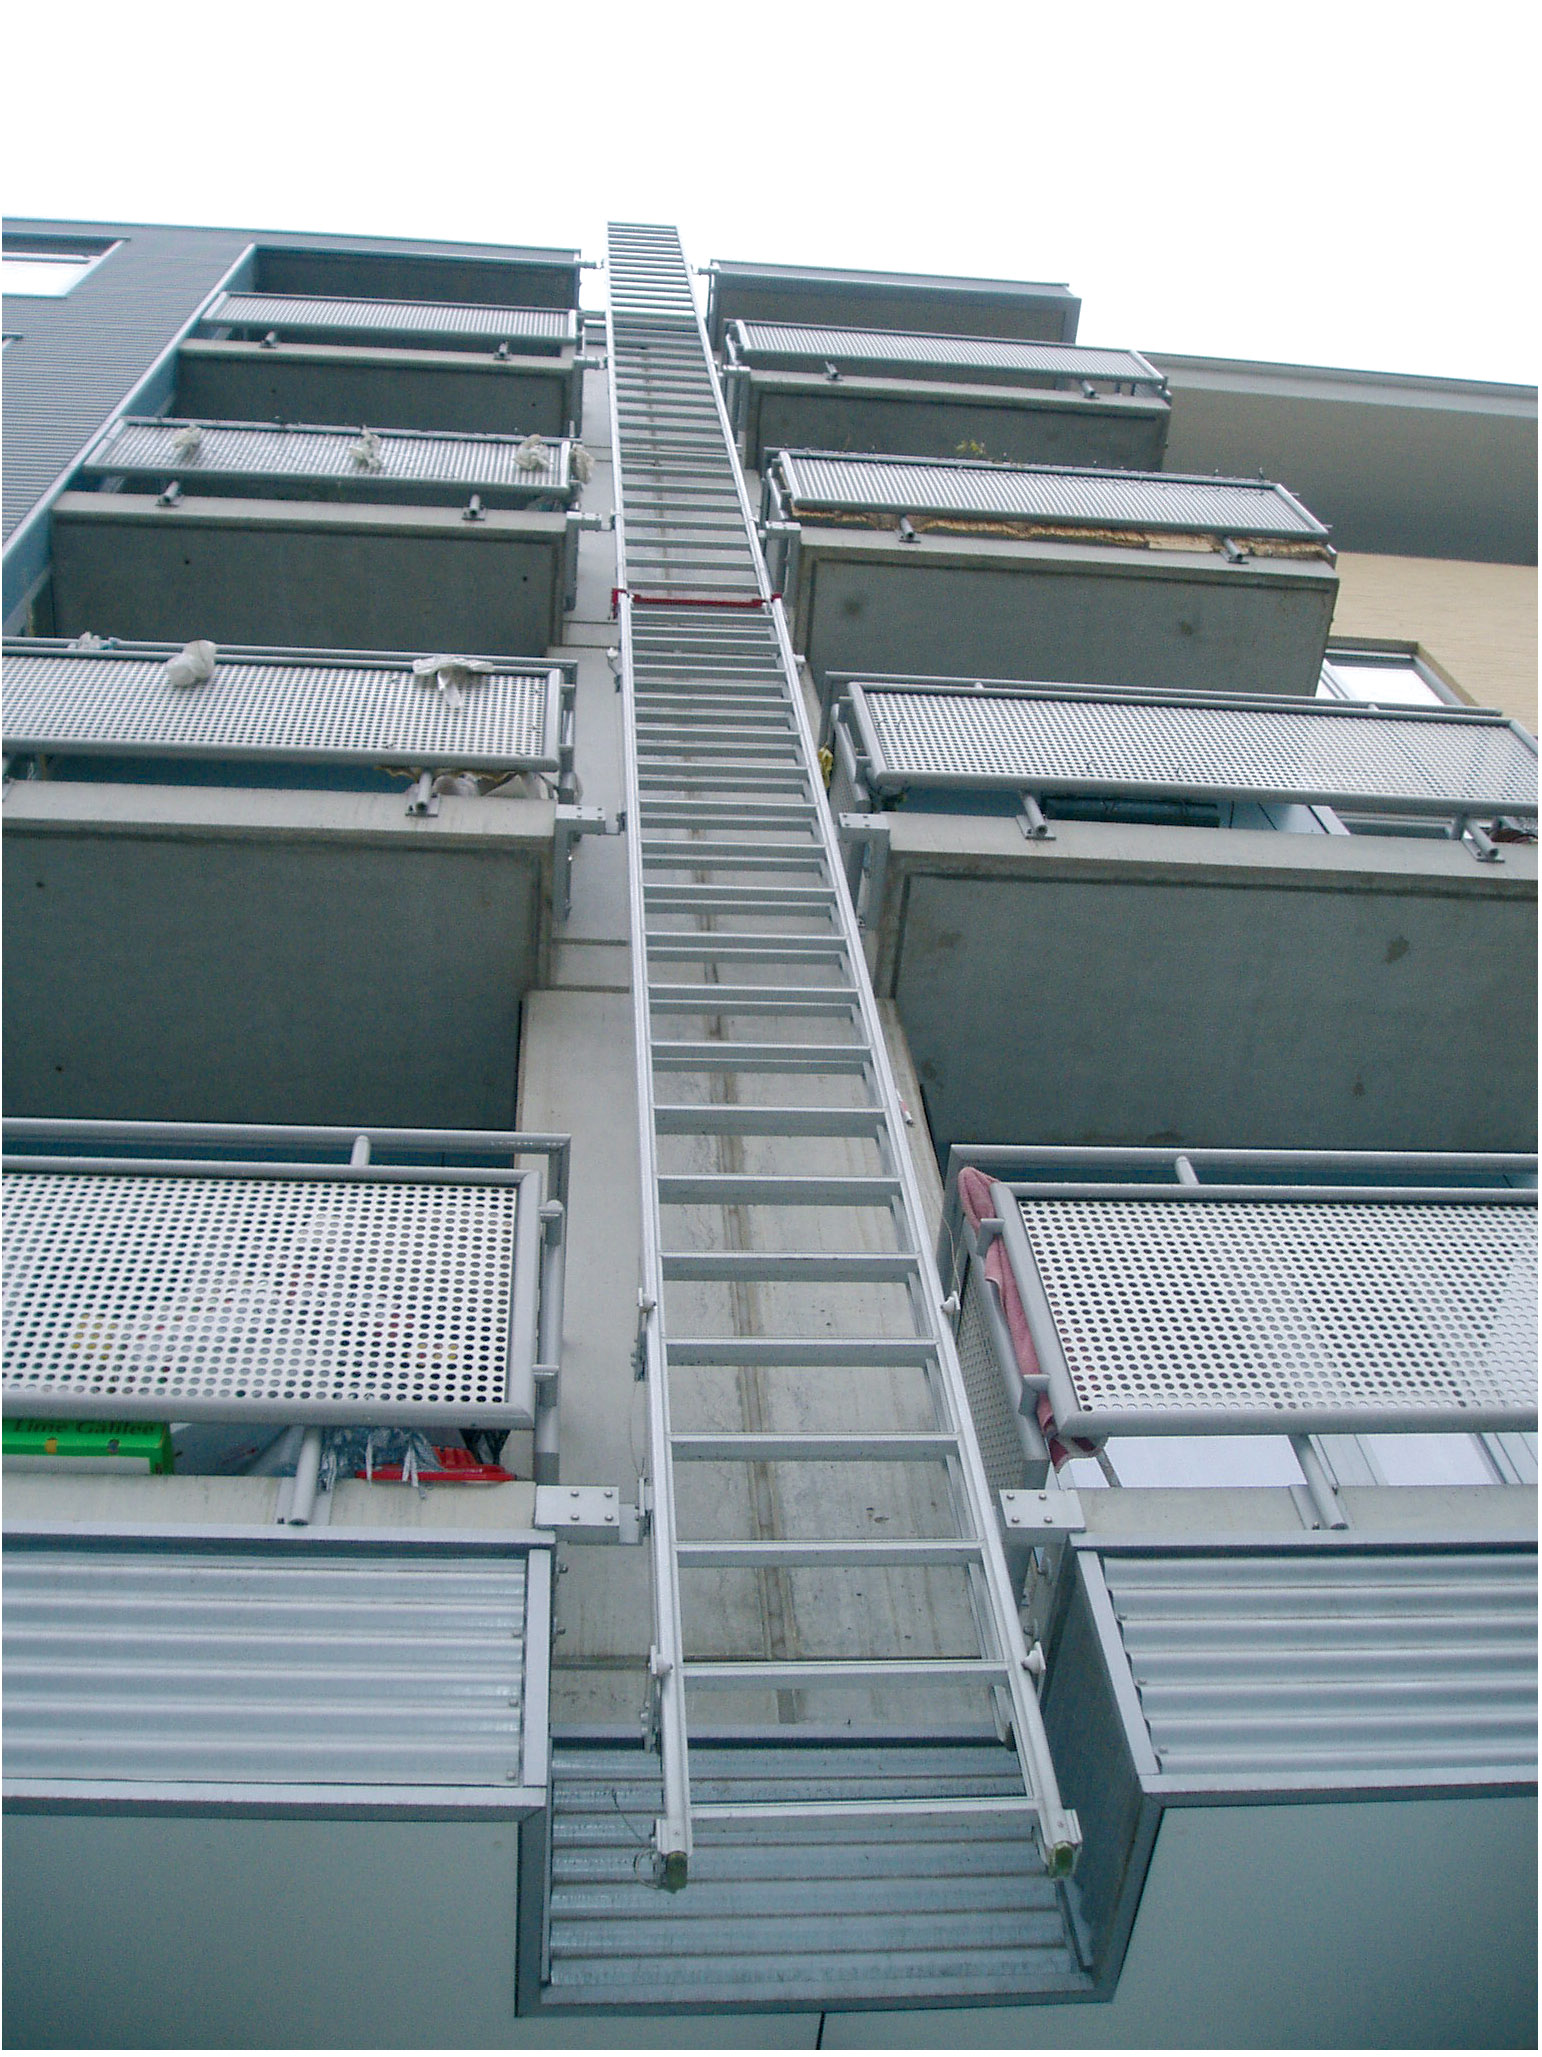 Anodised aluminum evacuation ladder antwerp version